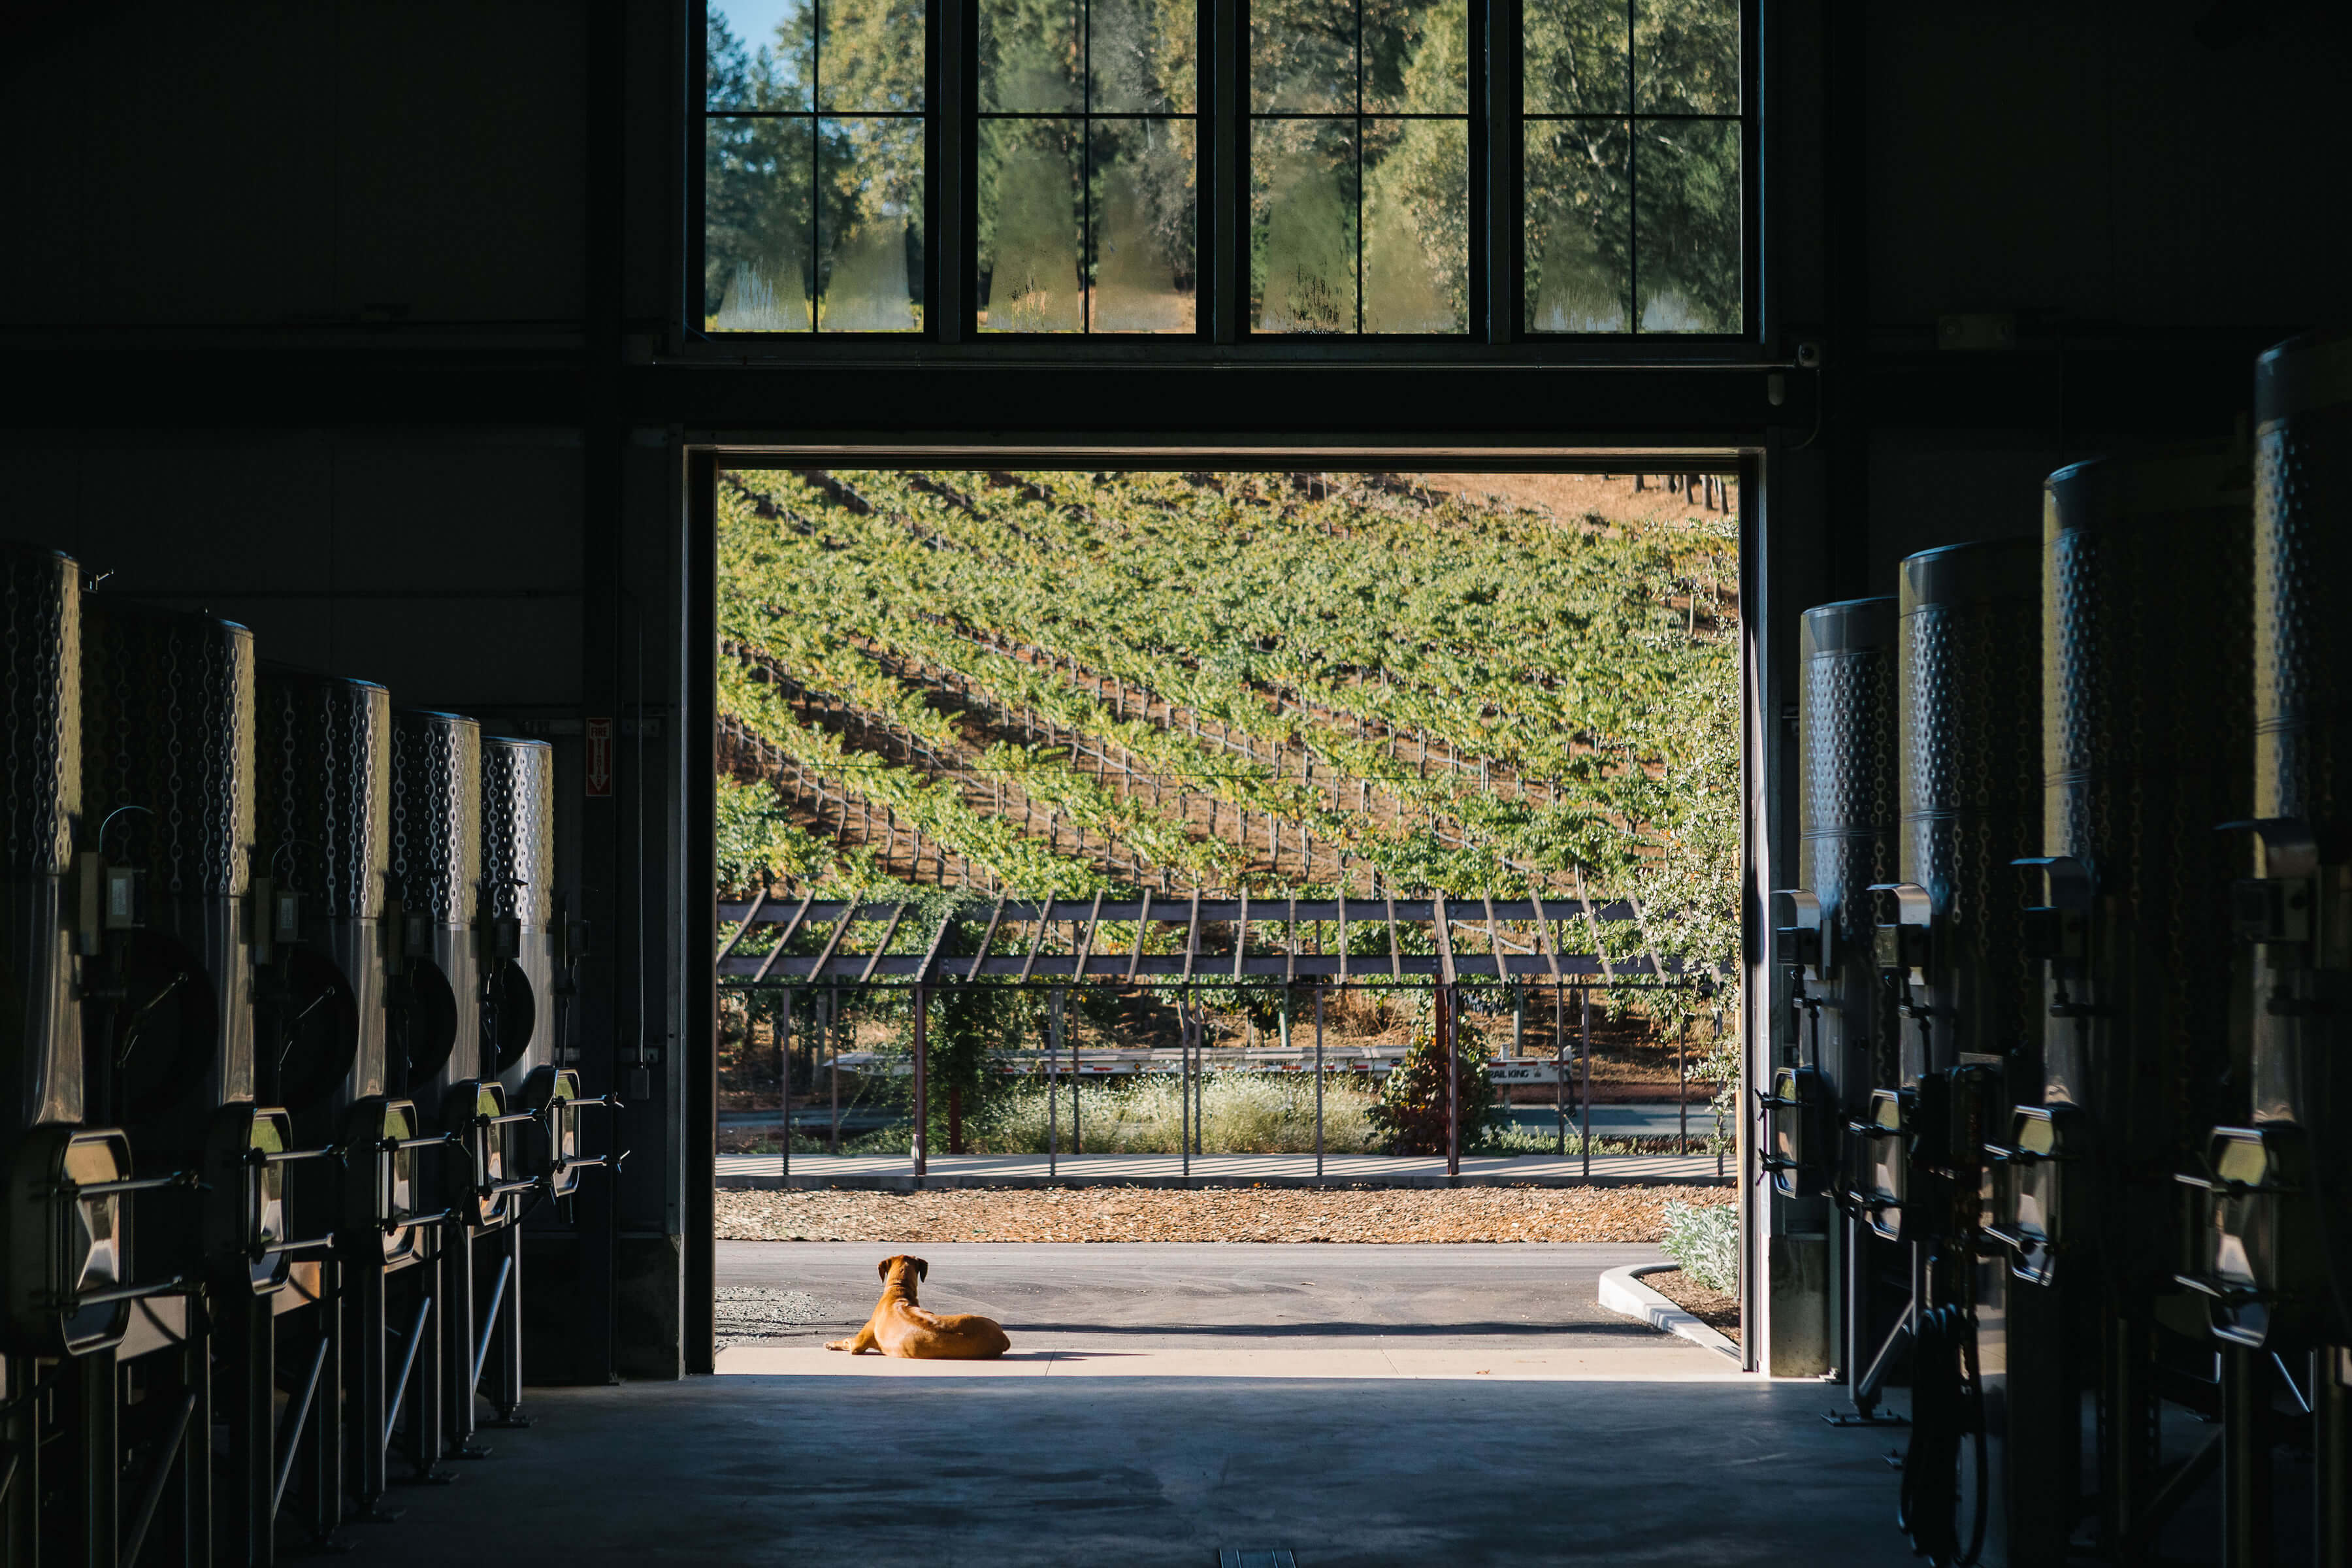 Wine Making Room with Cute Pup in Doorway